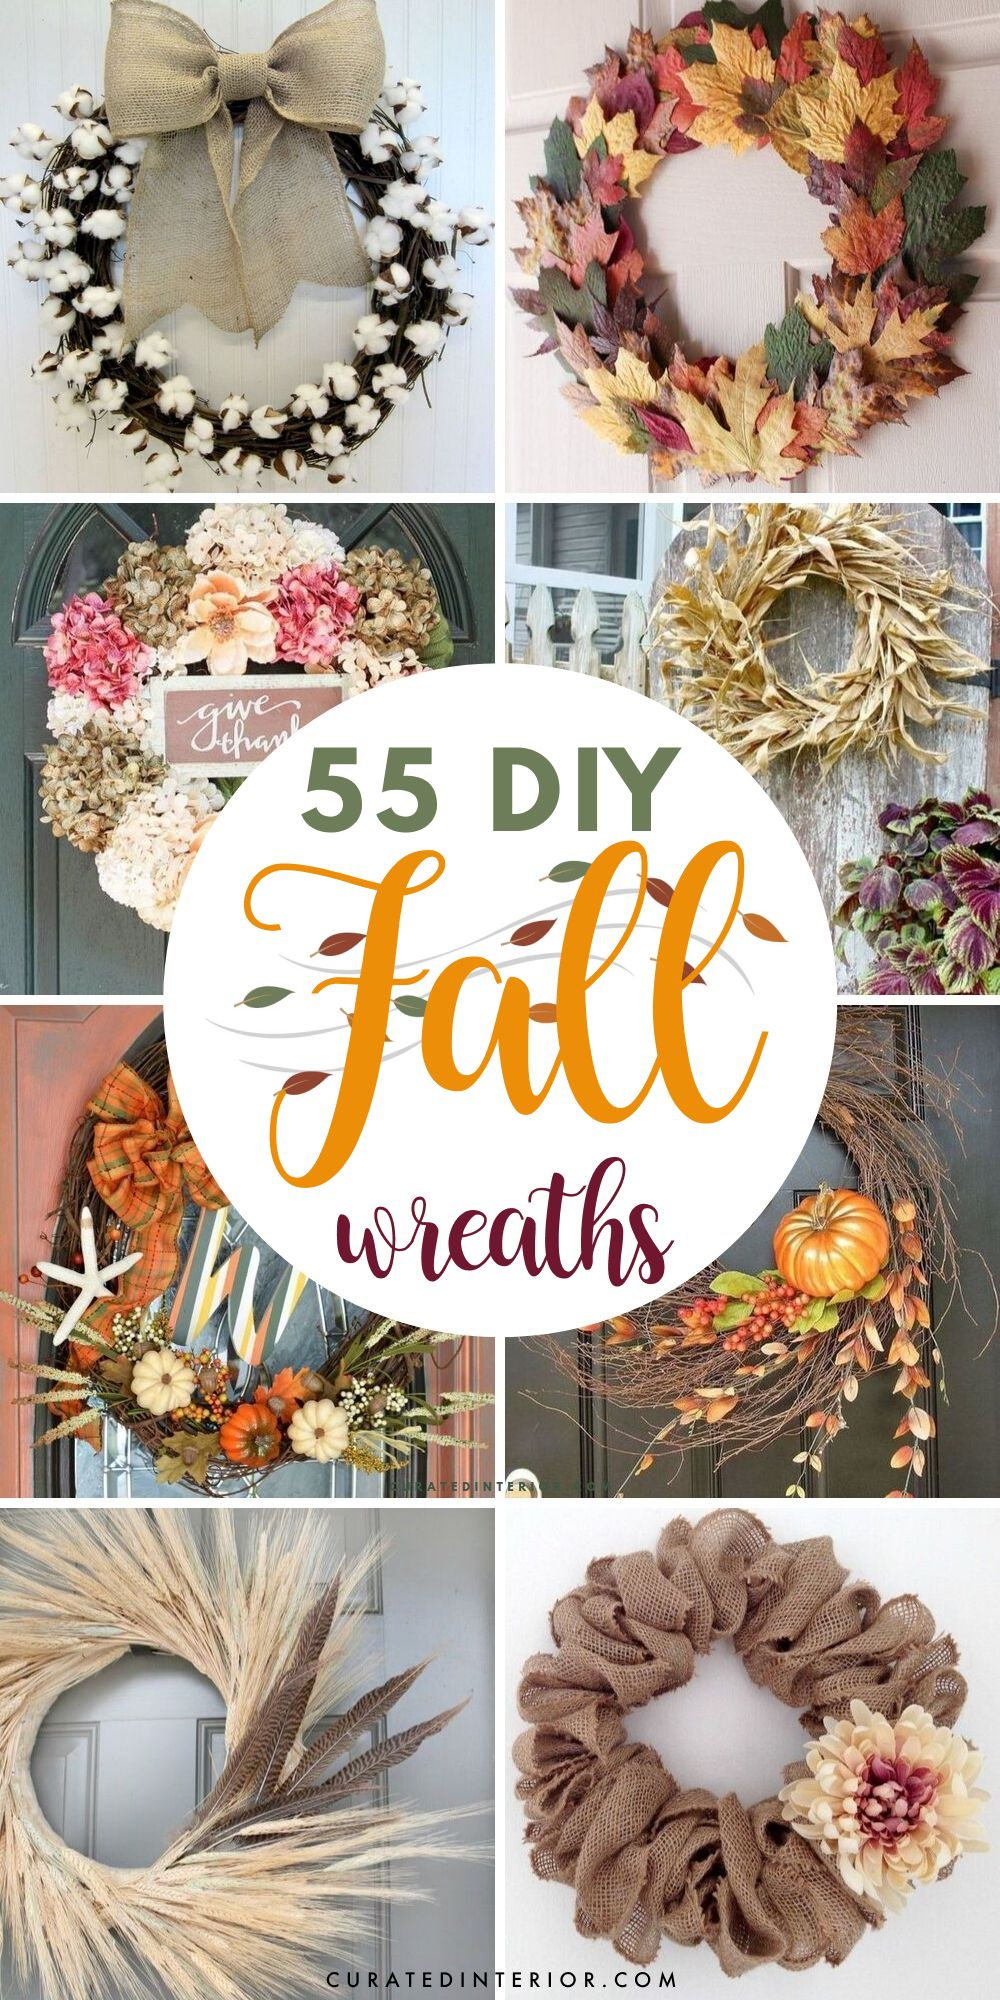 55 DIY Fall Wreaths that are Easy and Inexpensive to Make ...